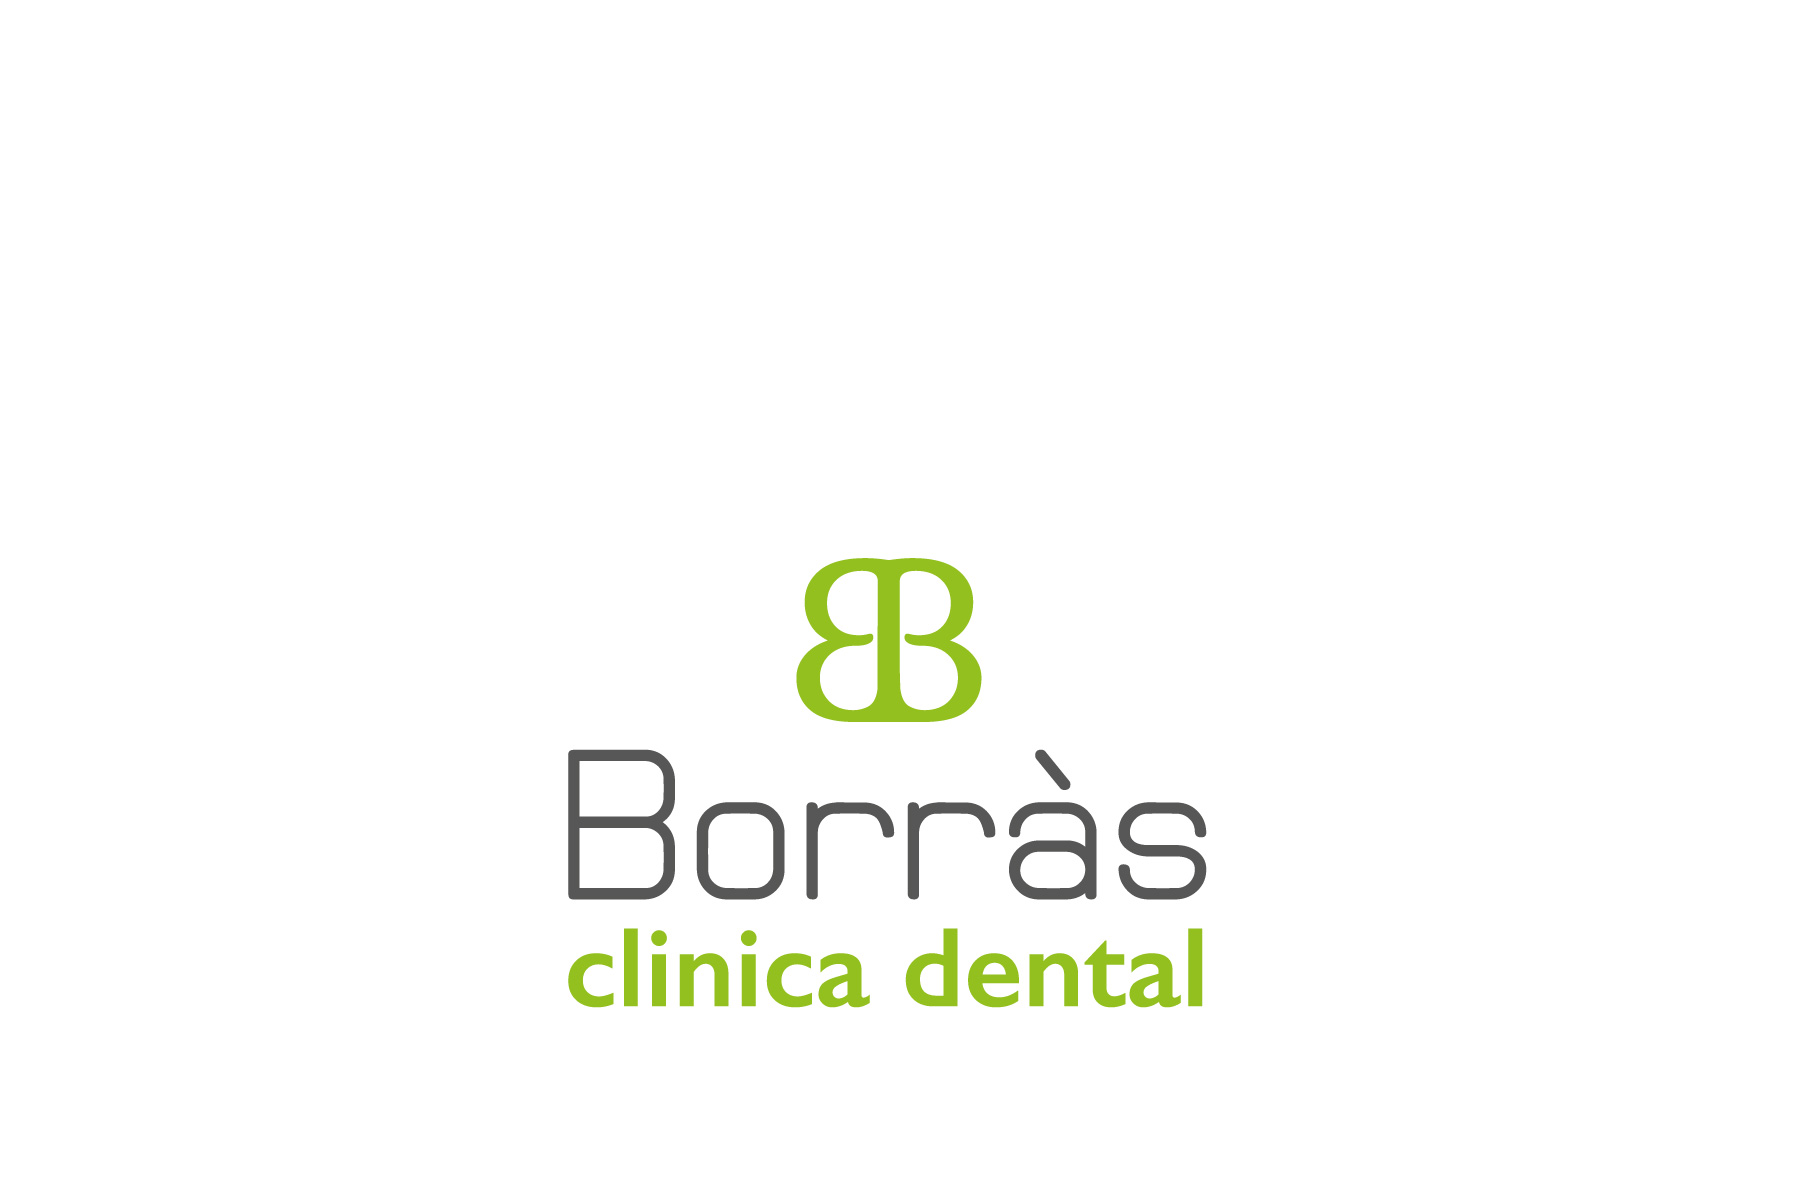 BORRÁS Clínica Dental